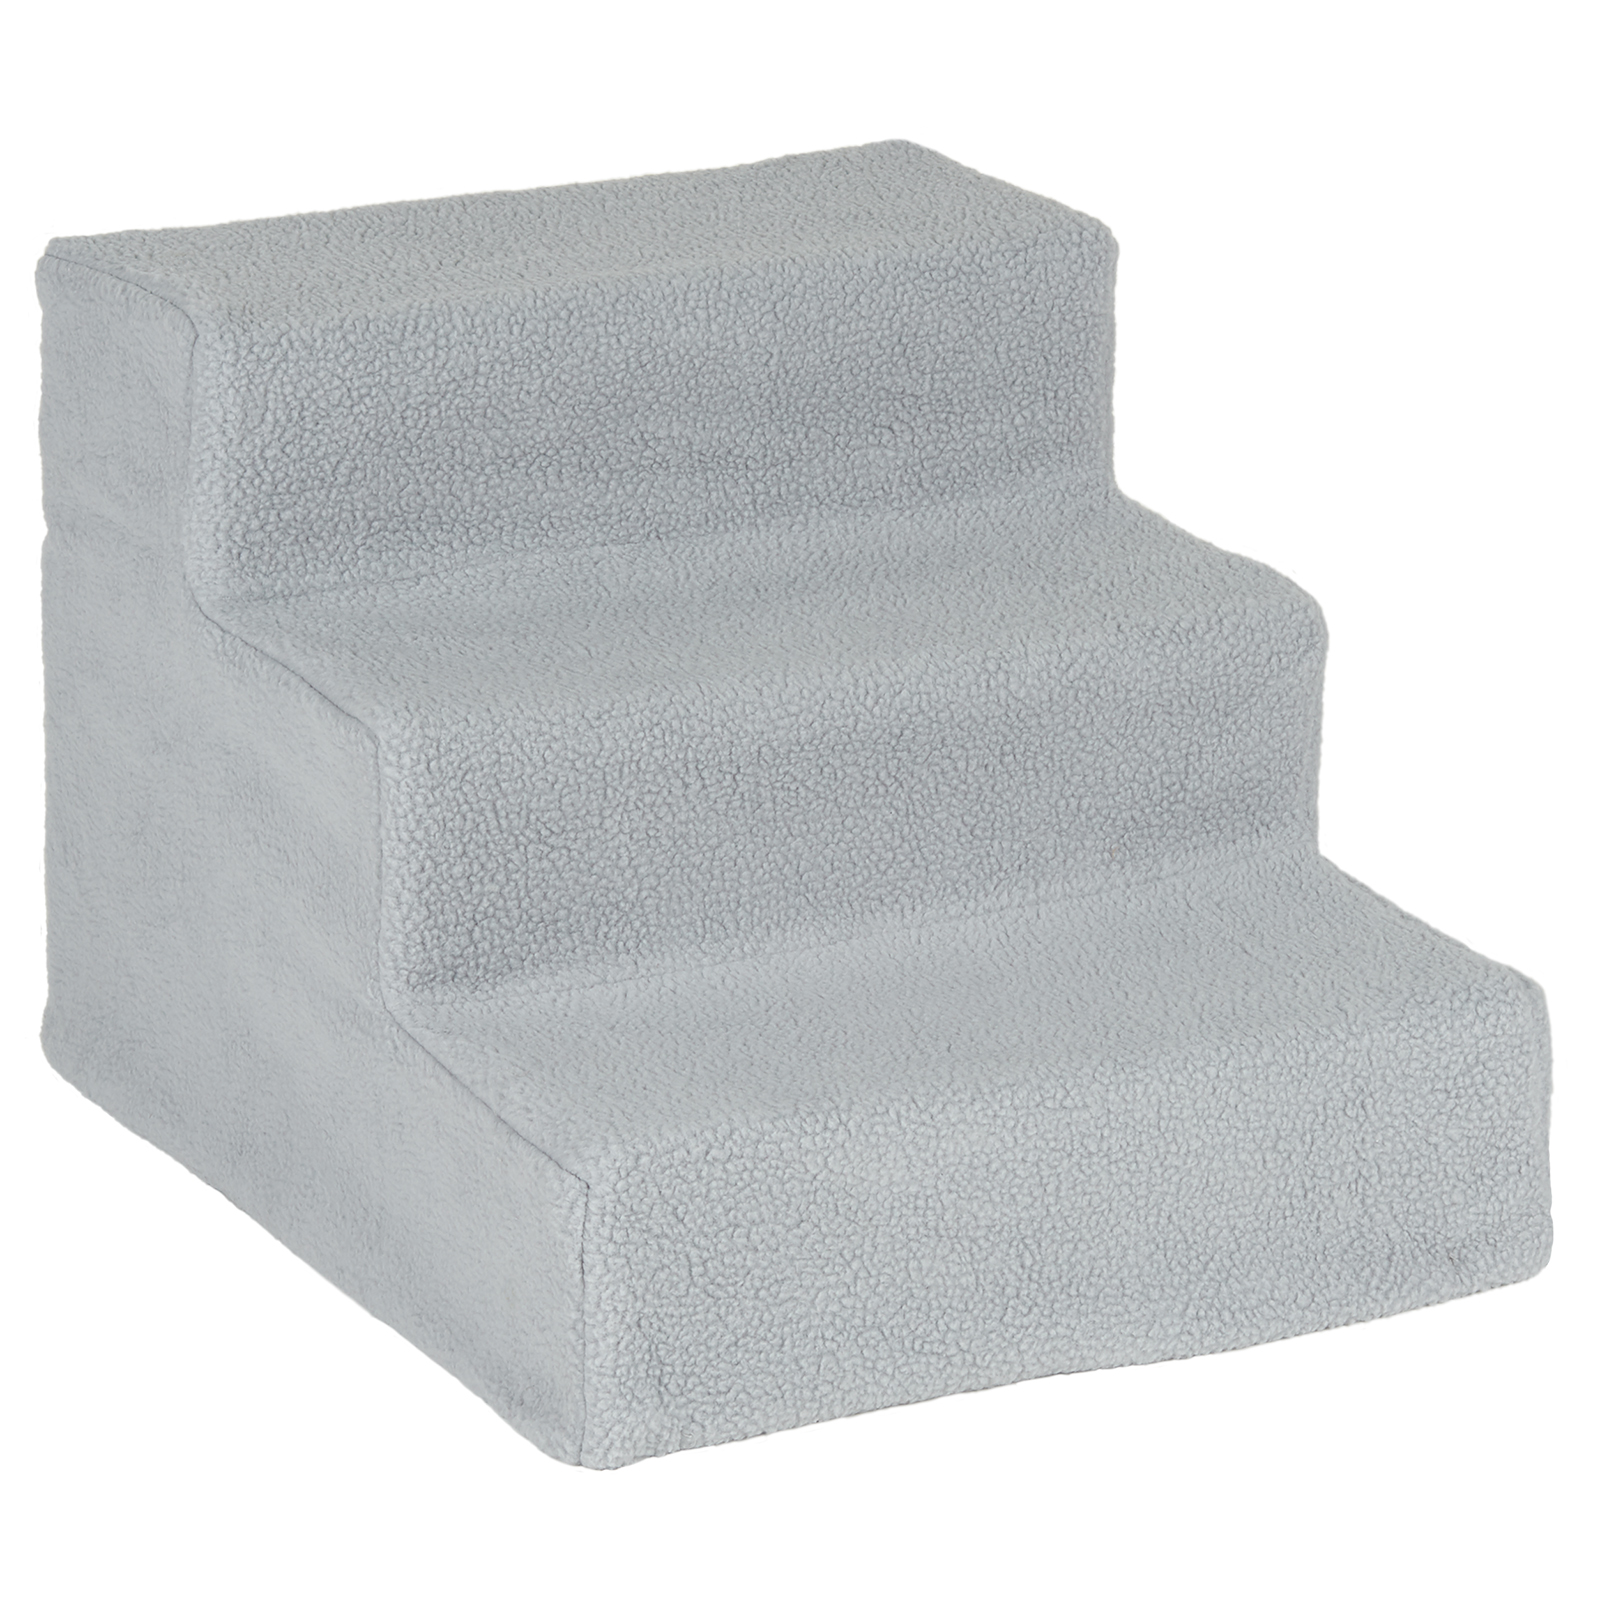 Me Amp My Grey Easy Climb Plastic Pet Stairs Dog Cat Step